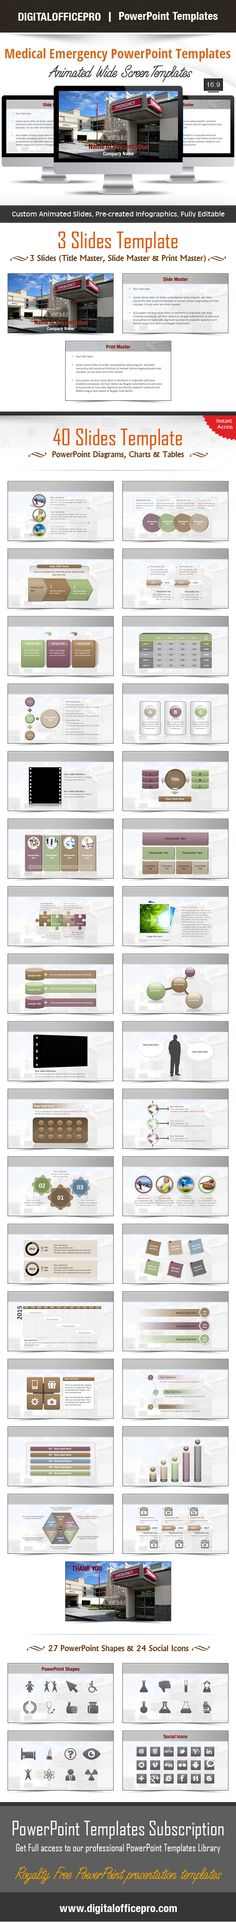 Impress and Engage your audience with Medical Emergency PowerPoint Template and Medical Emergency PowerPoint Backgrounds from DigitalOfficePro. Each template comes with a set of PowerPoint Diagrams, Charts & Shapes and are available for instant download.